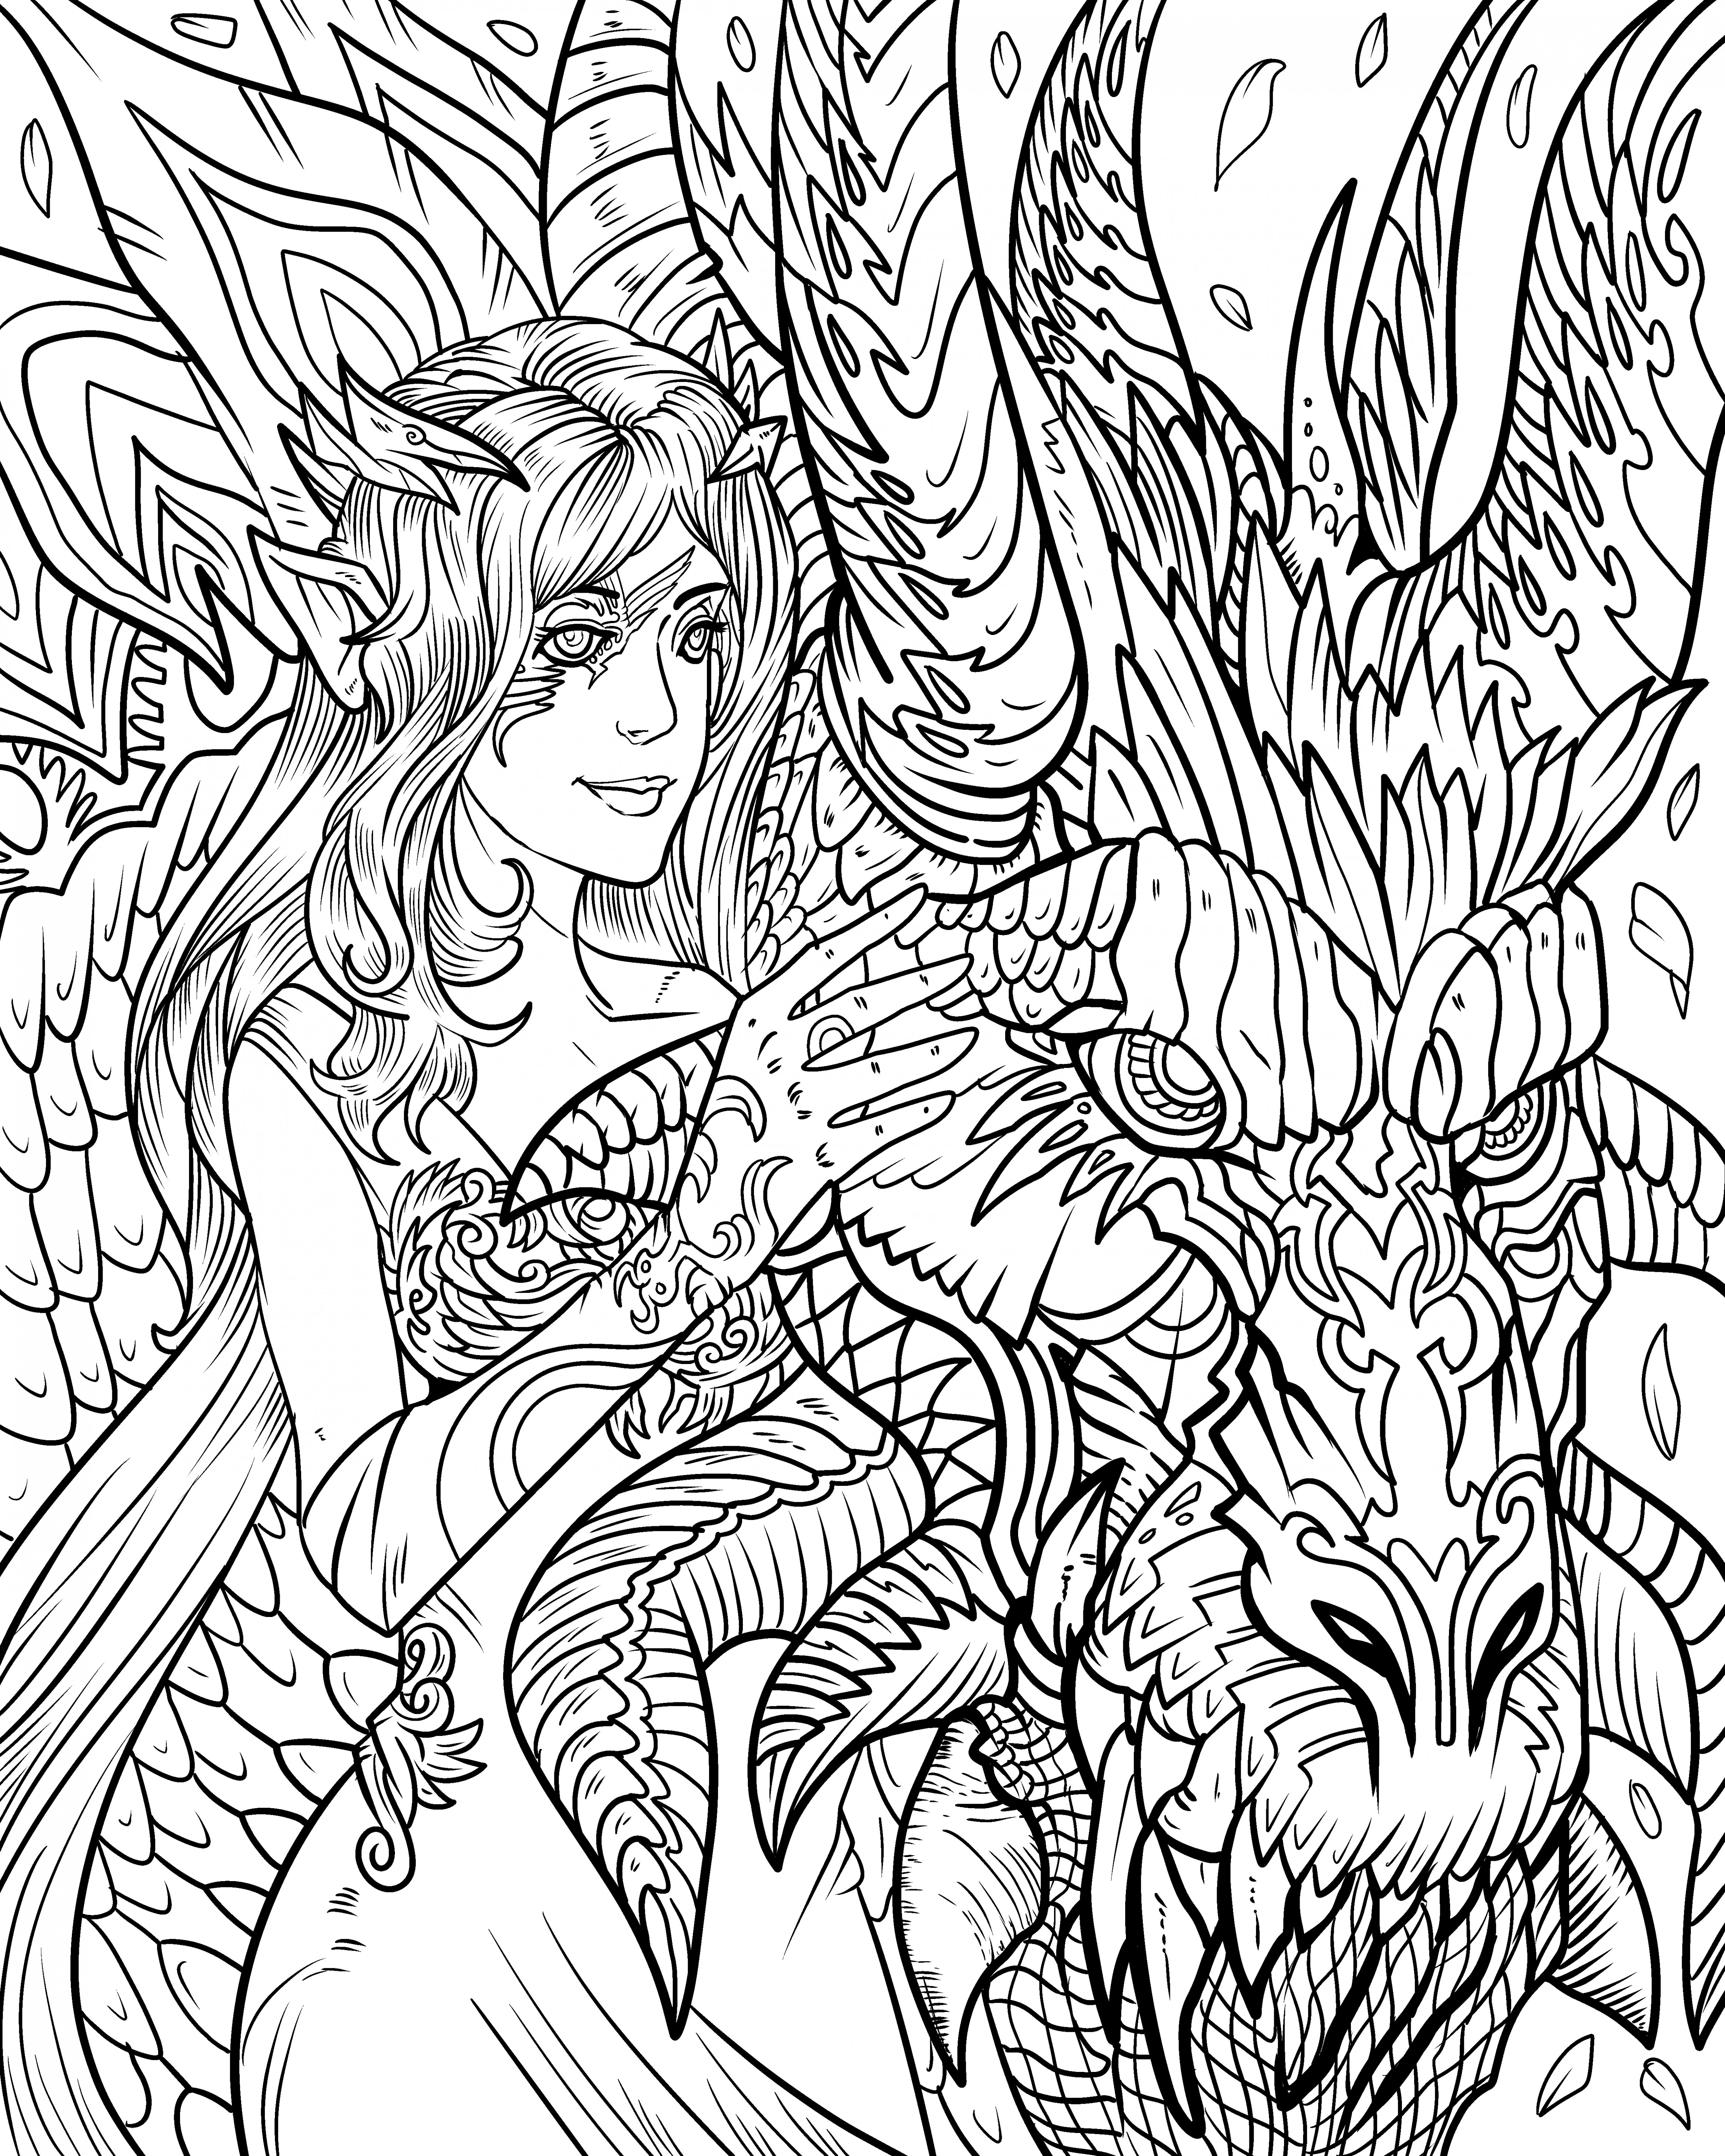 Dragon Life – Adult Coloring Books Nathaniel Wake Publishing – the coloring book